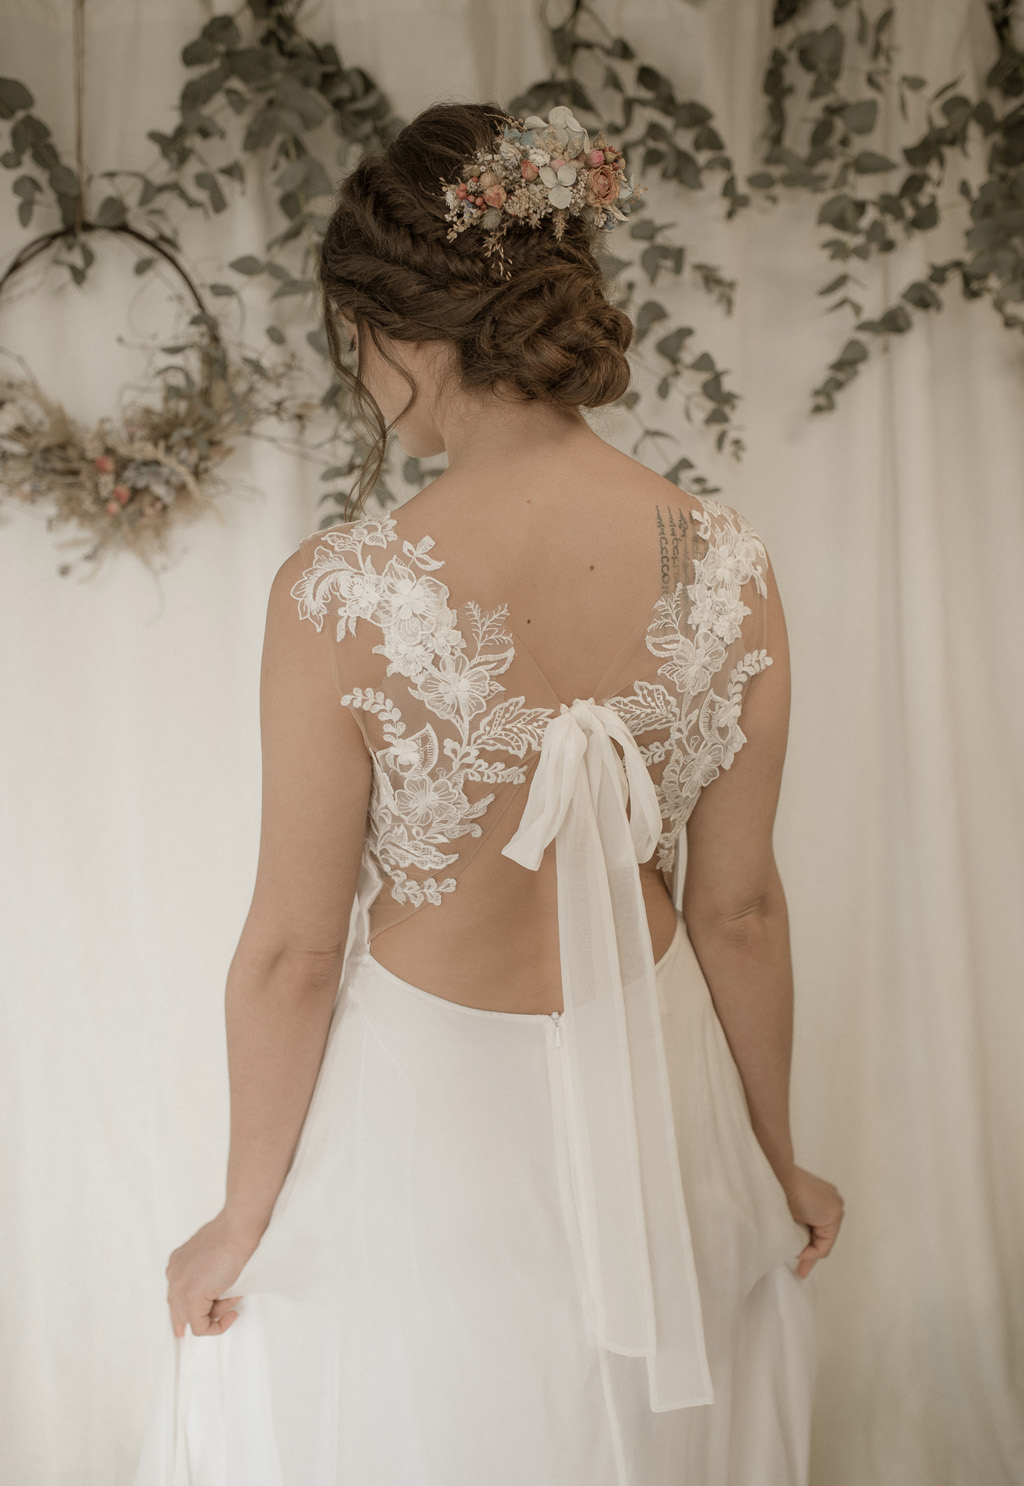 Where the Wild Things Grow 2022 bridal collection by ethical UK wedding dress designer Jessica Turner